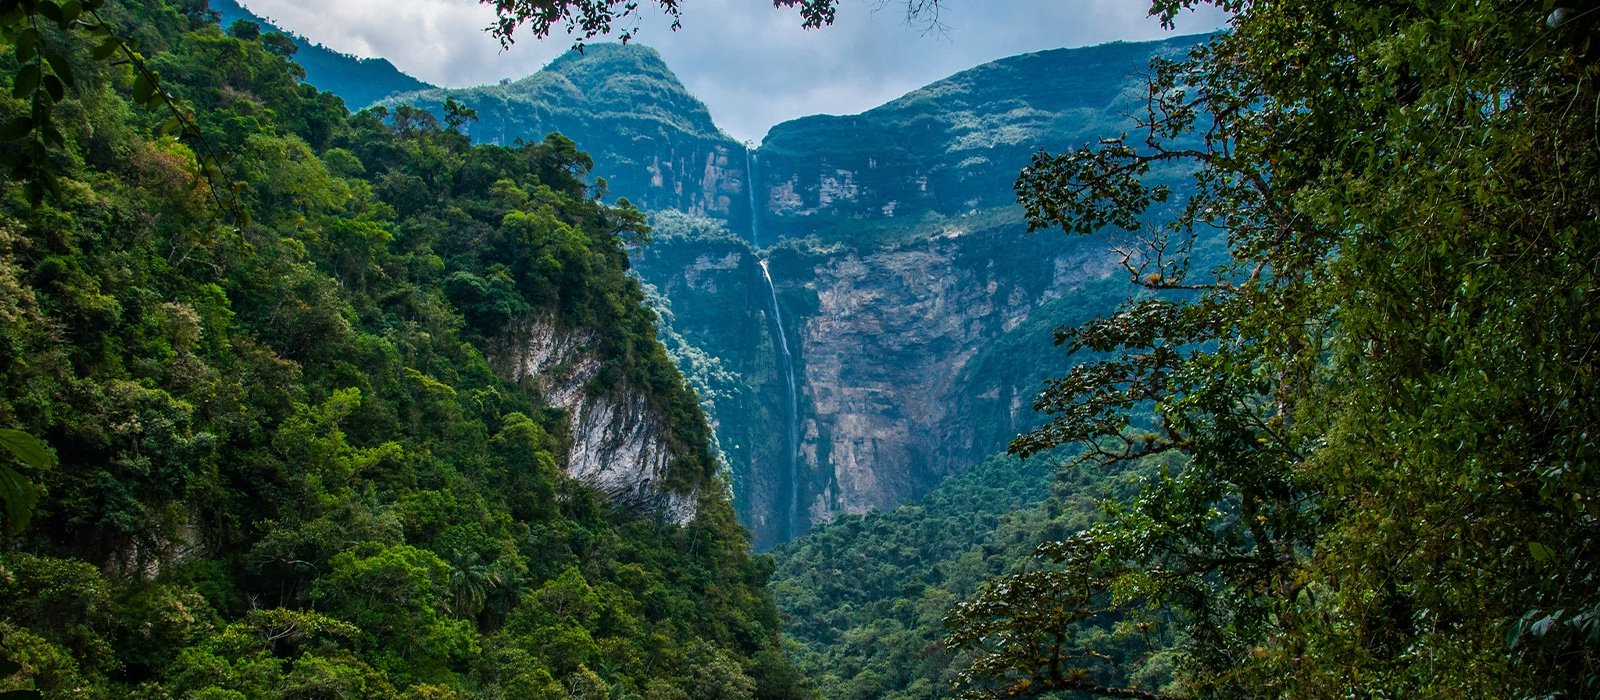 The Wonders of Chachapoyas and Gocta Waterfall – 6 Days